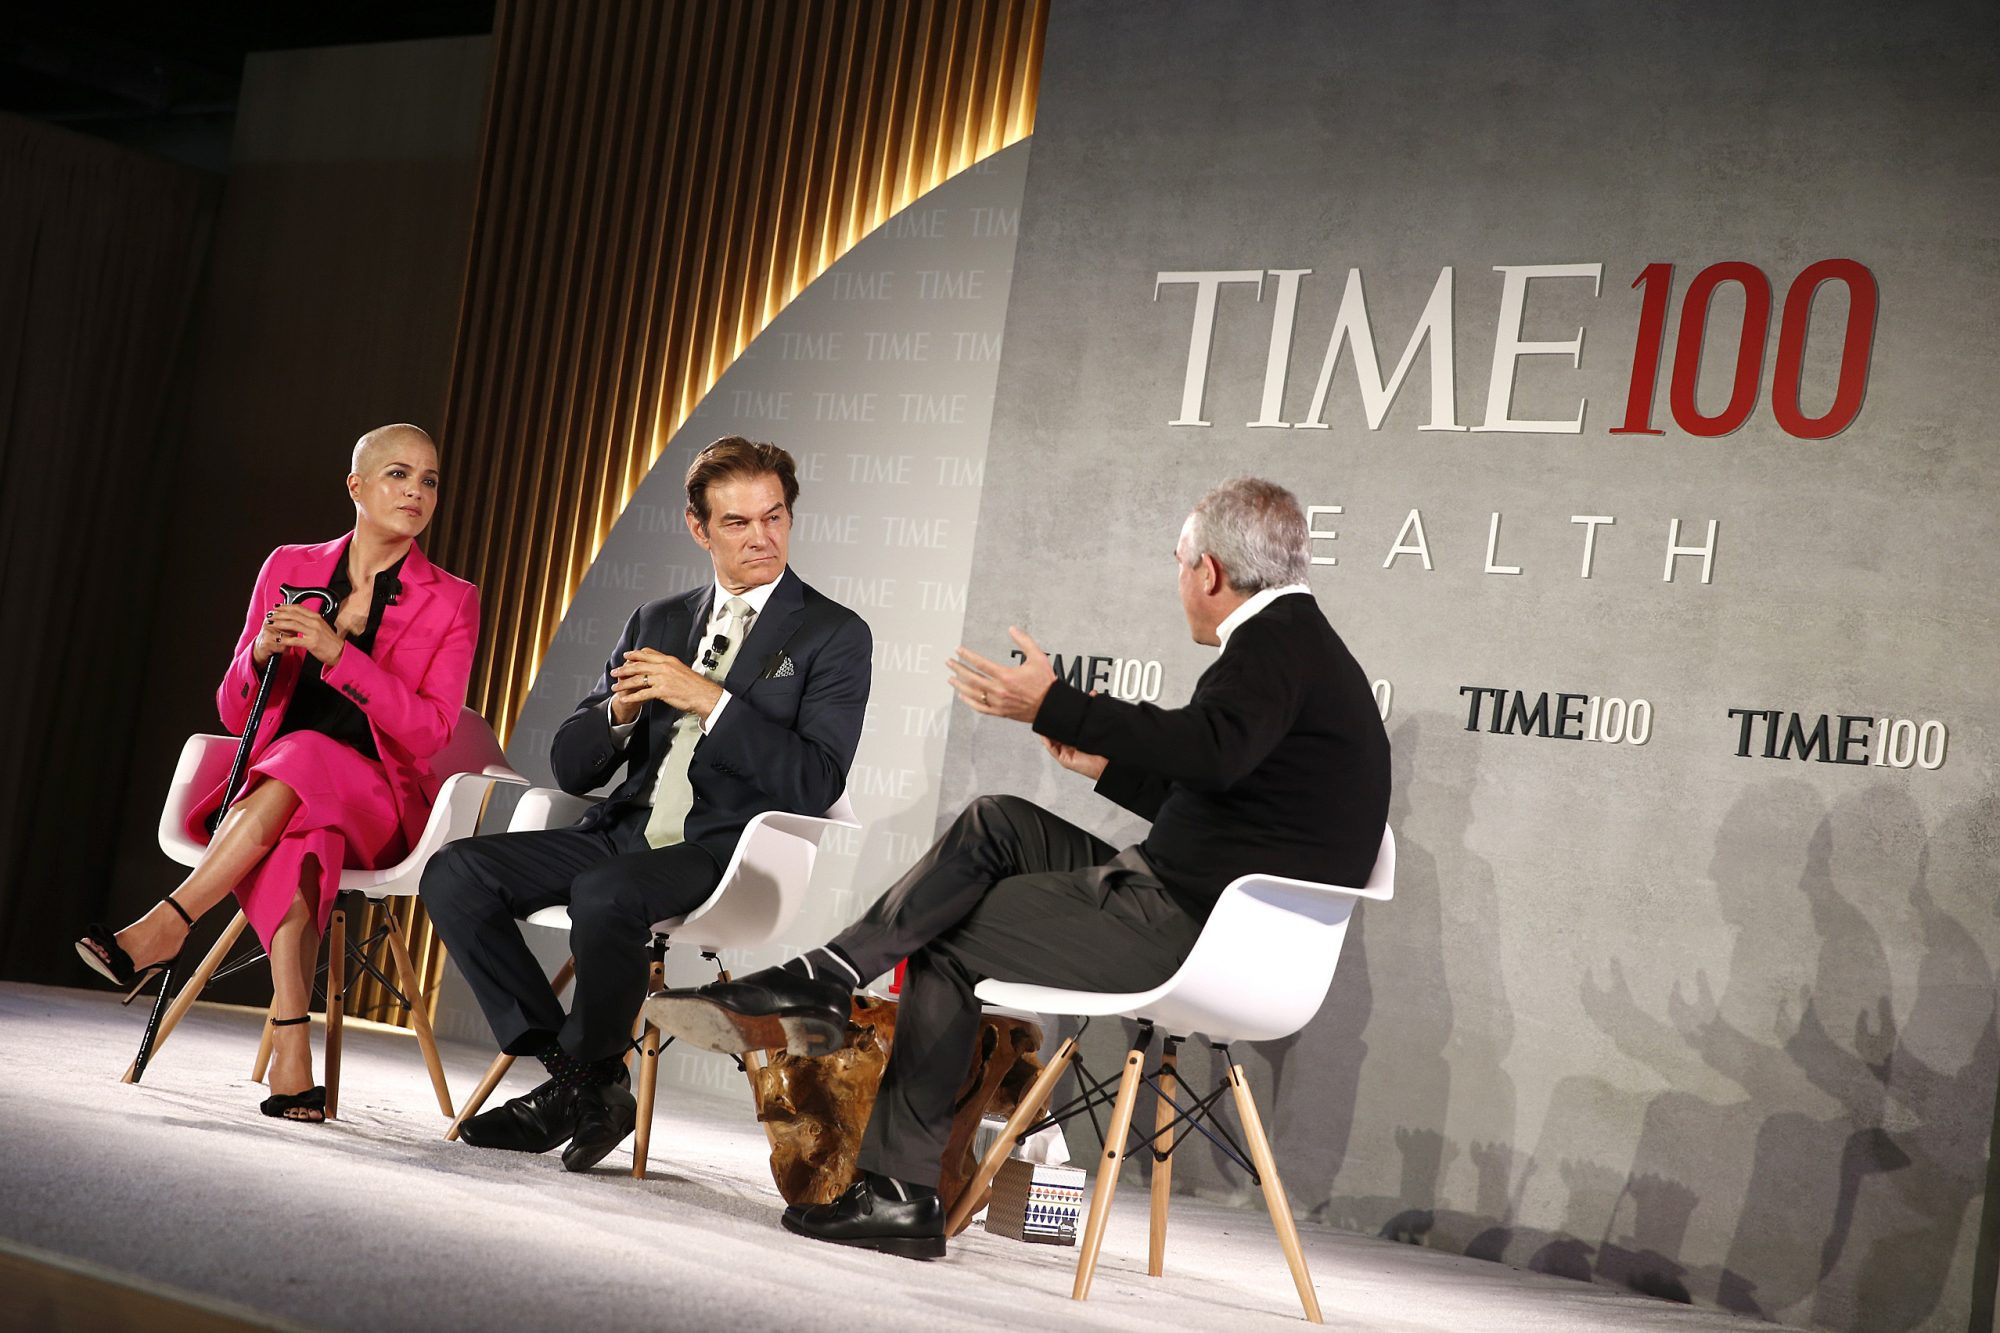 Selma Blair on Stage at the TIME 100 Health Summit